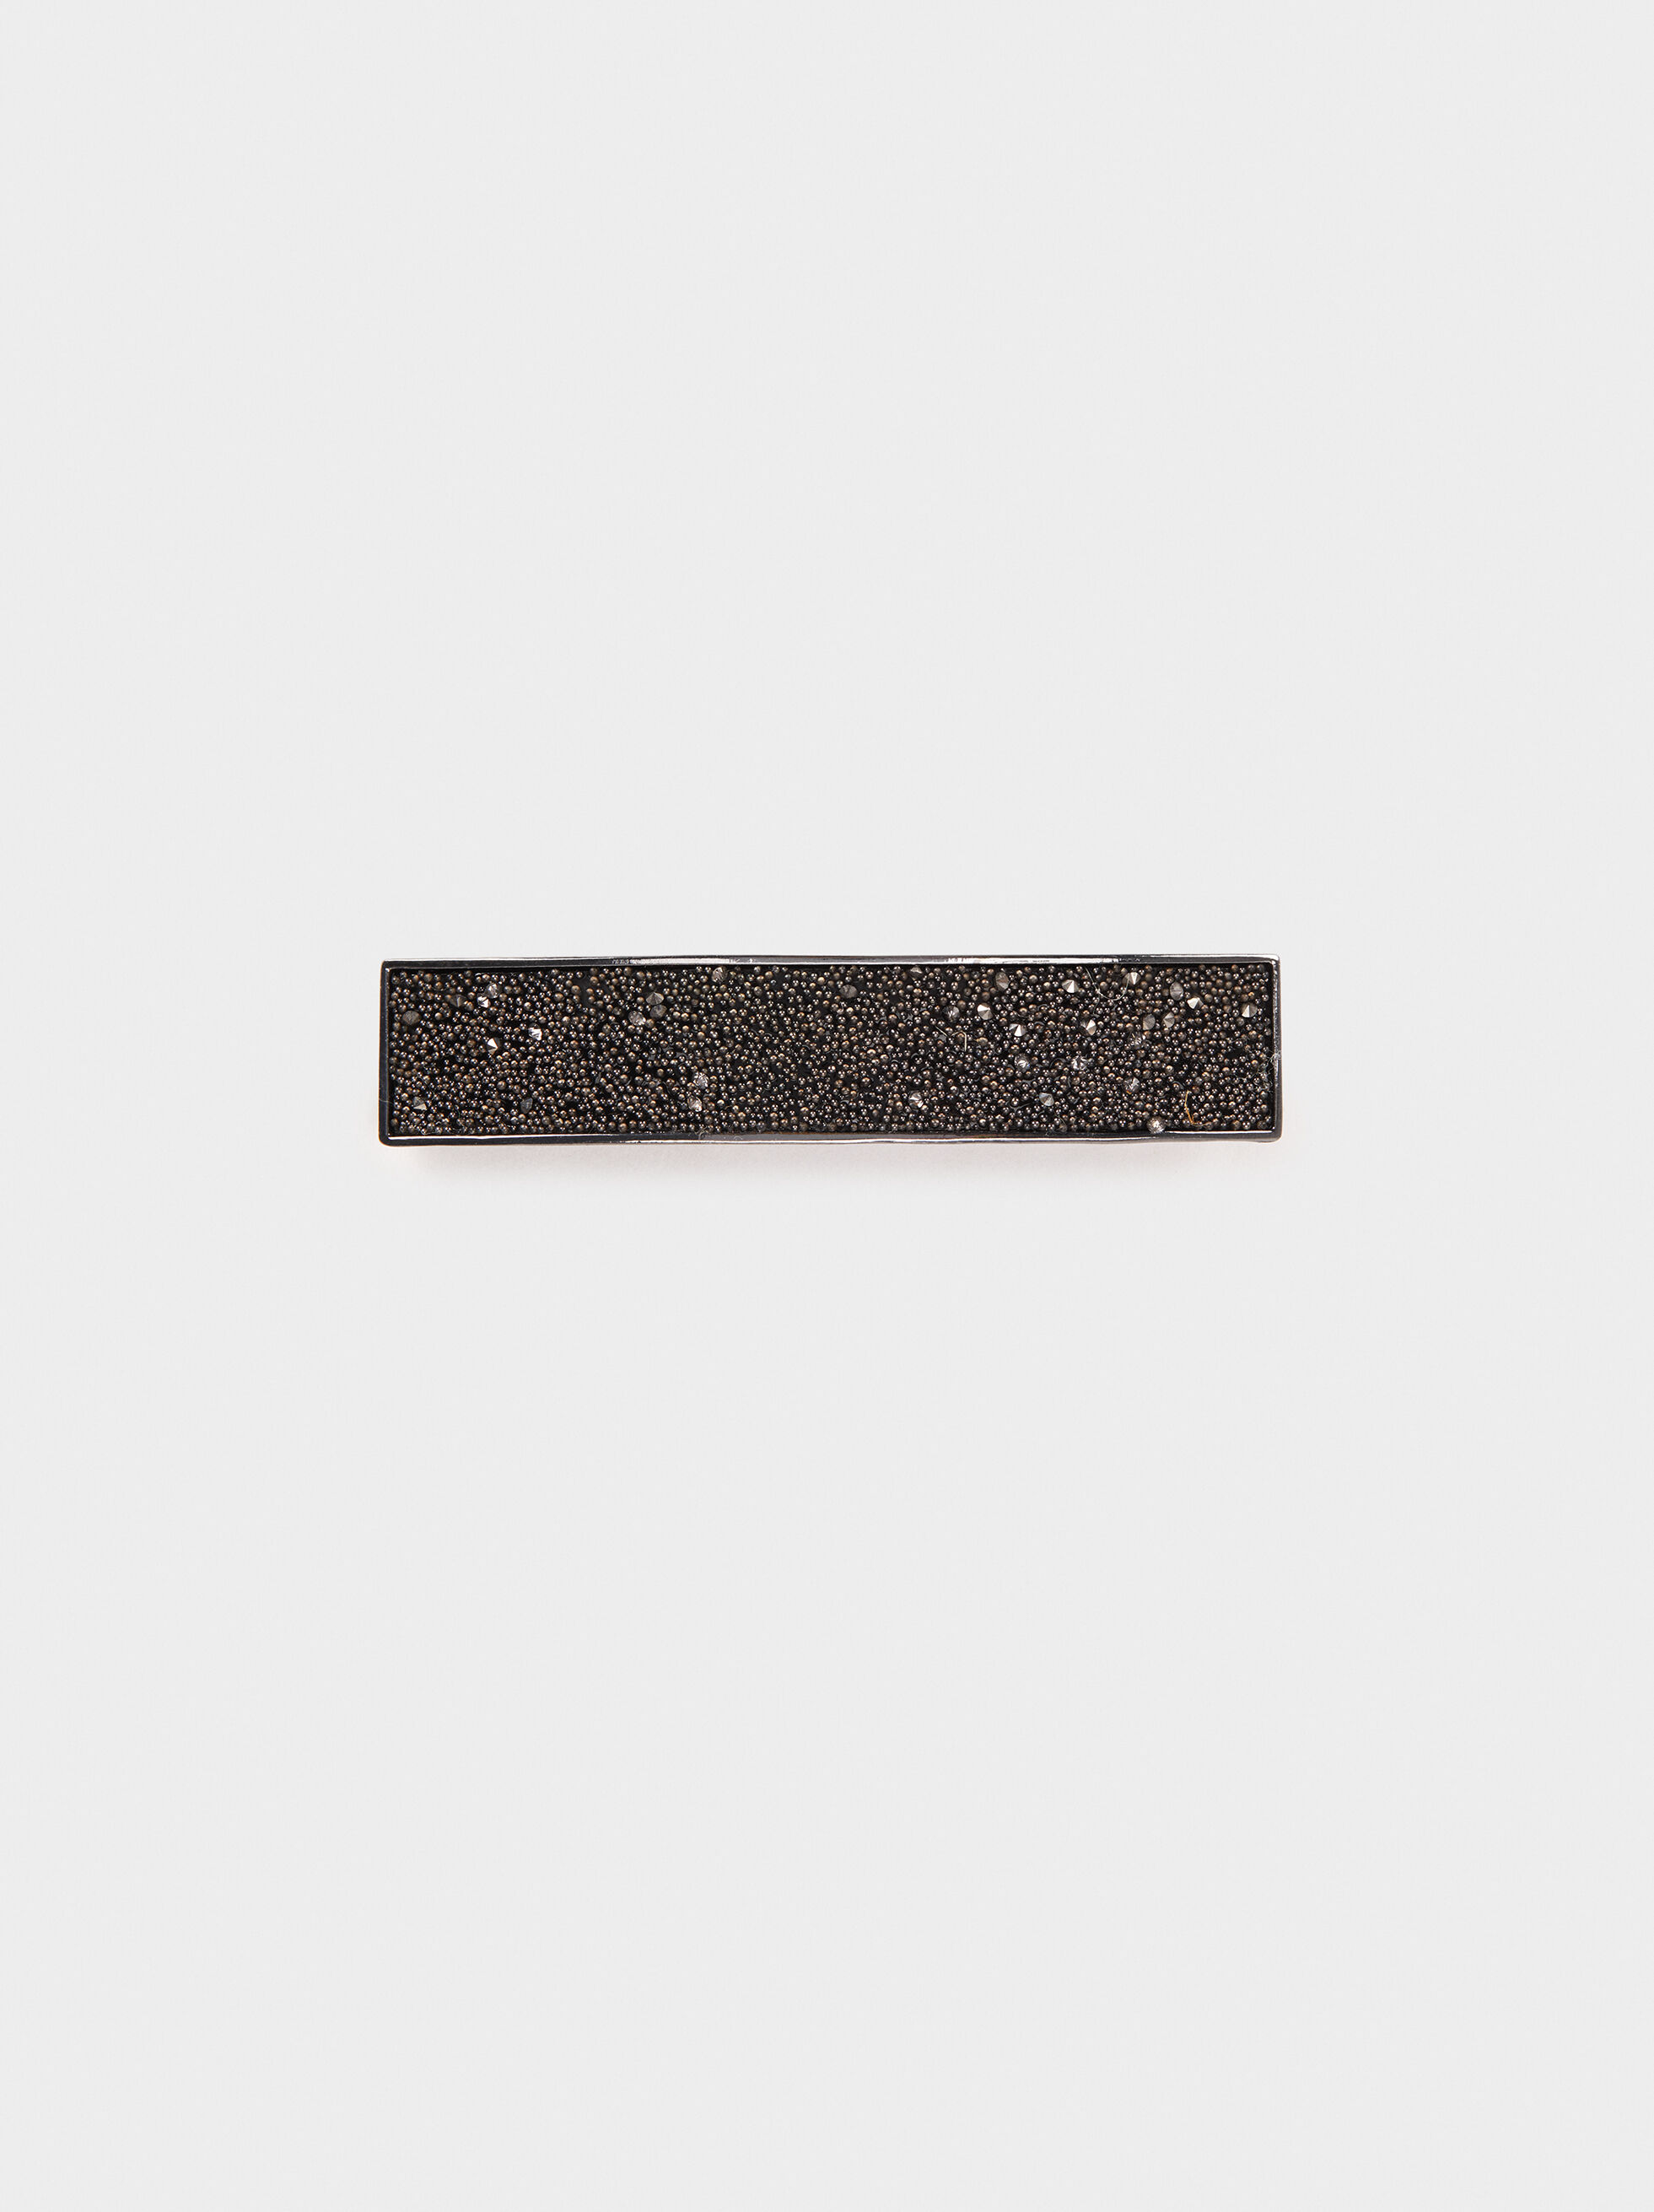 Rectangular Hairclip, Black, hi-res